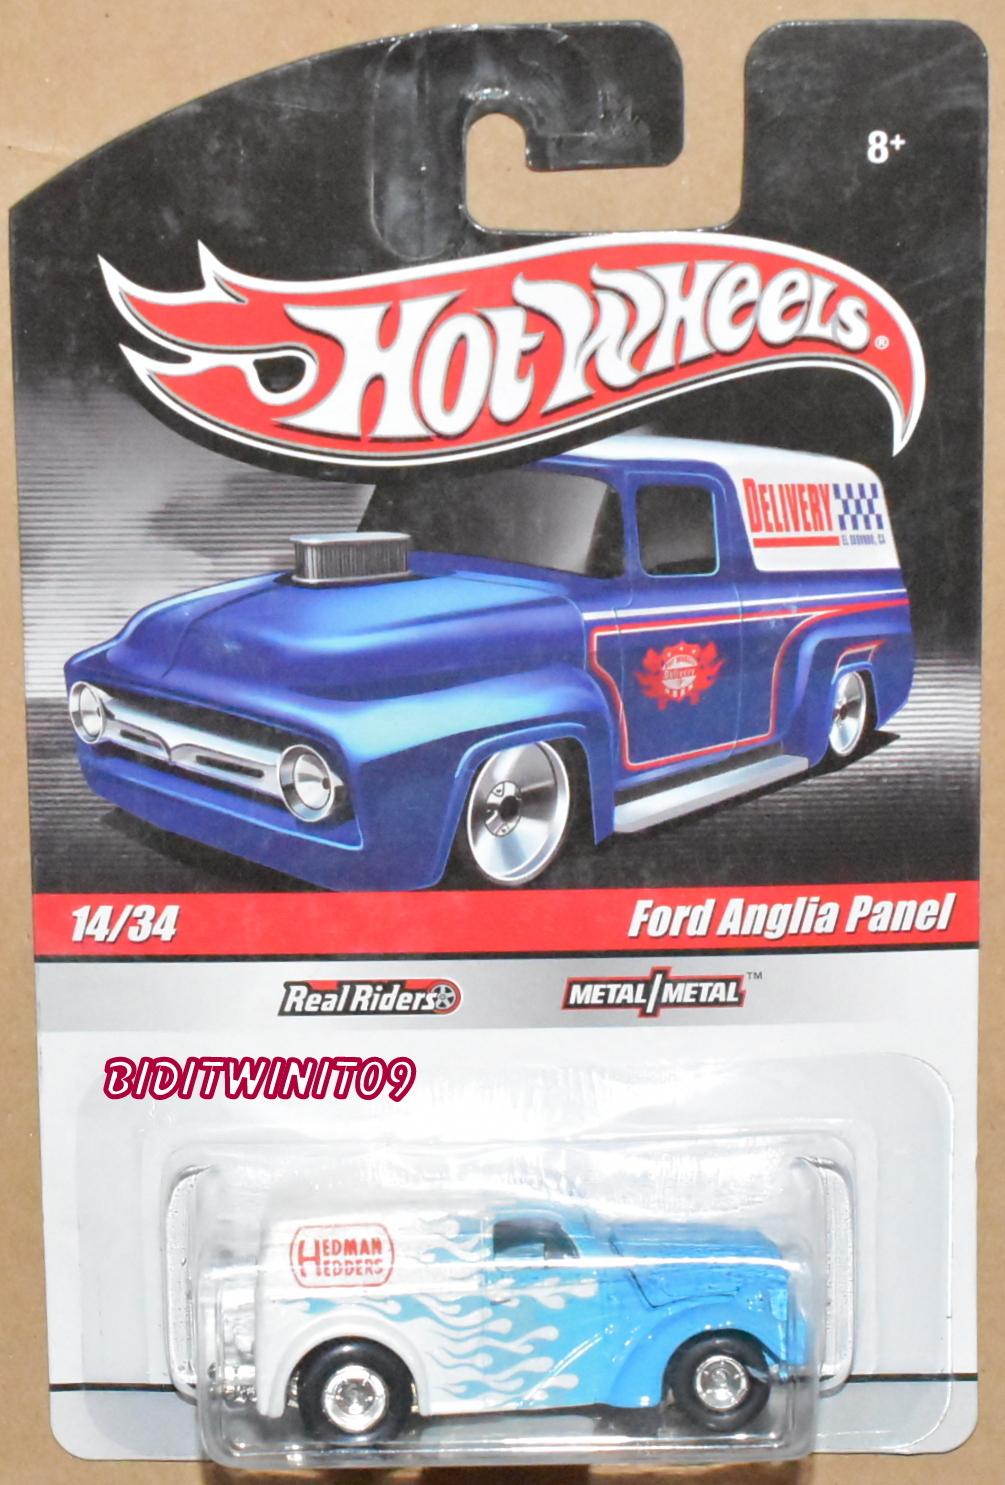 HOT WHEELS DELIVERY FORD ANGLIA PANEL #14/34 REAL RIDERS E+